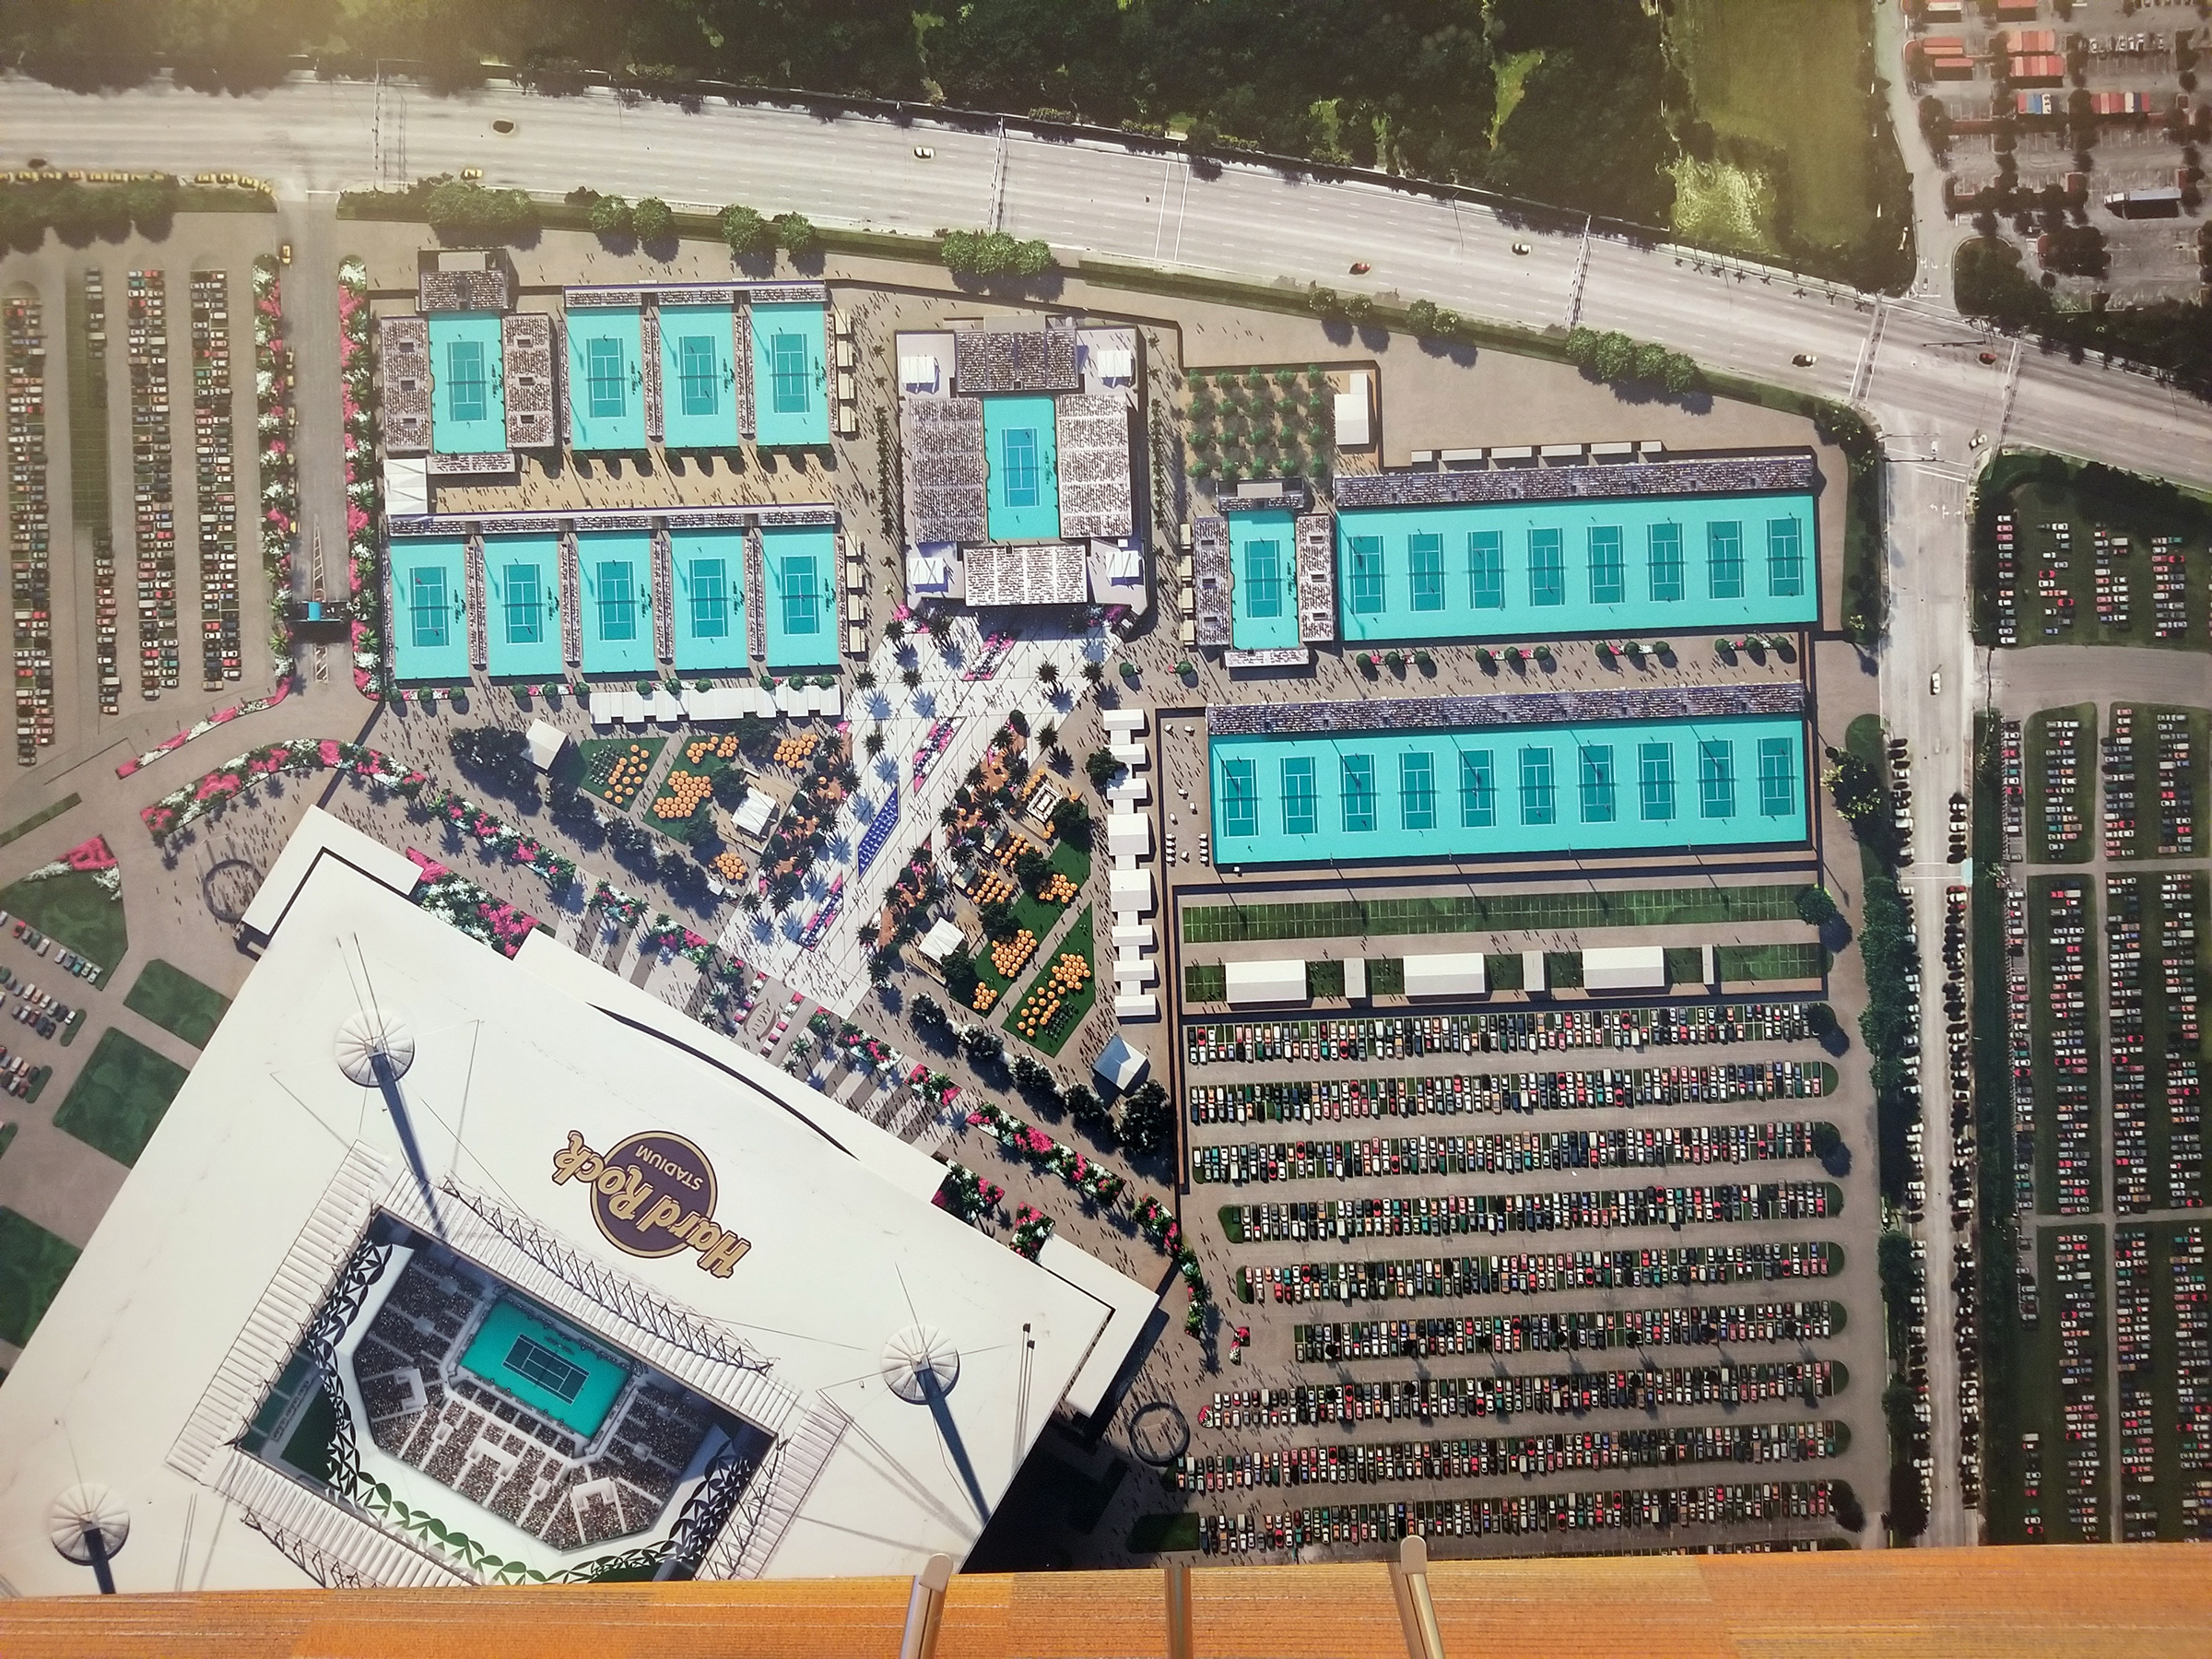 hard rock stadium living up to role as 'global